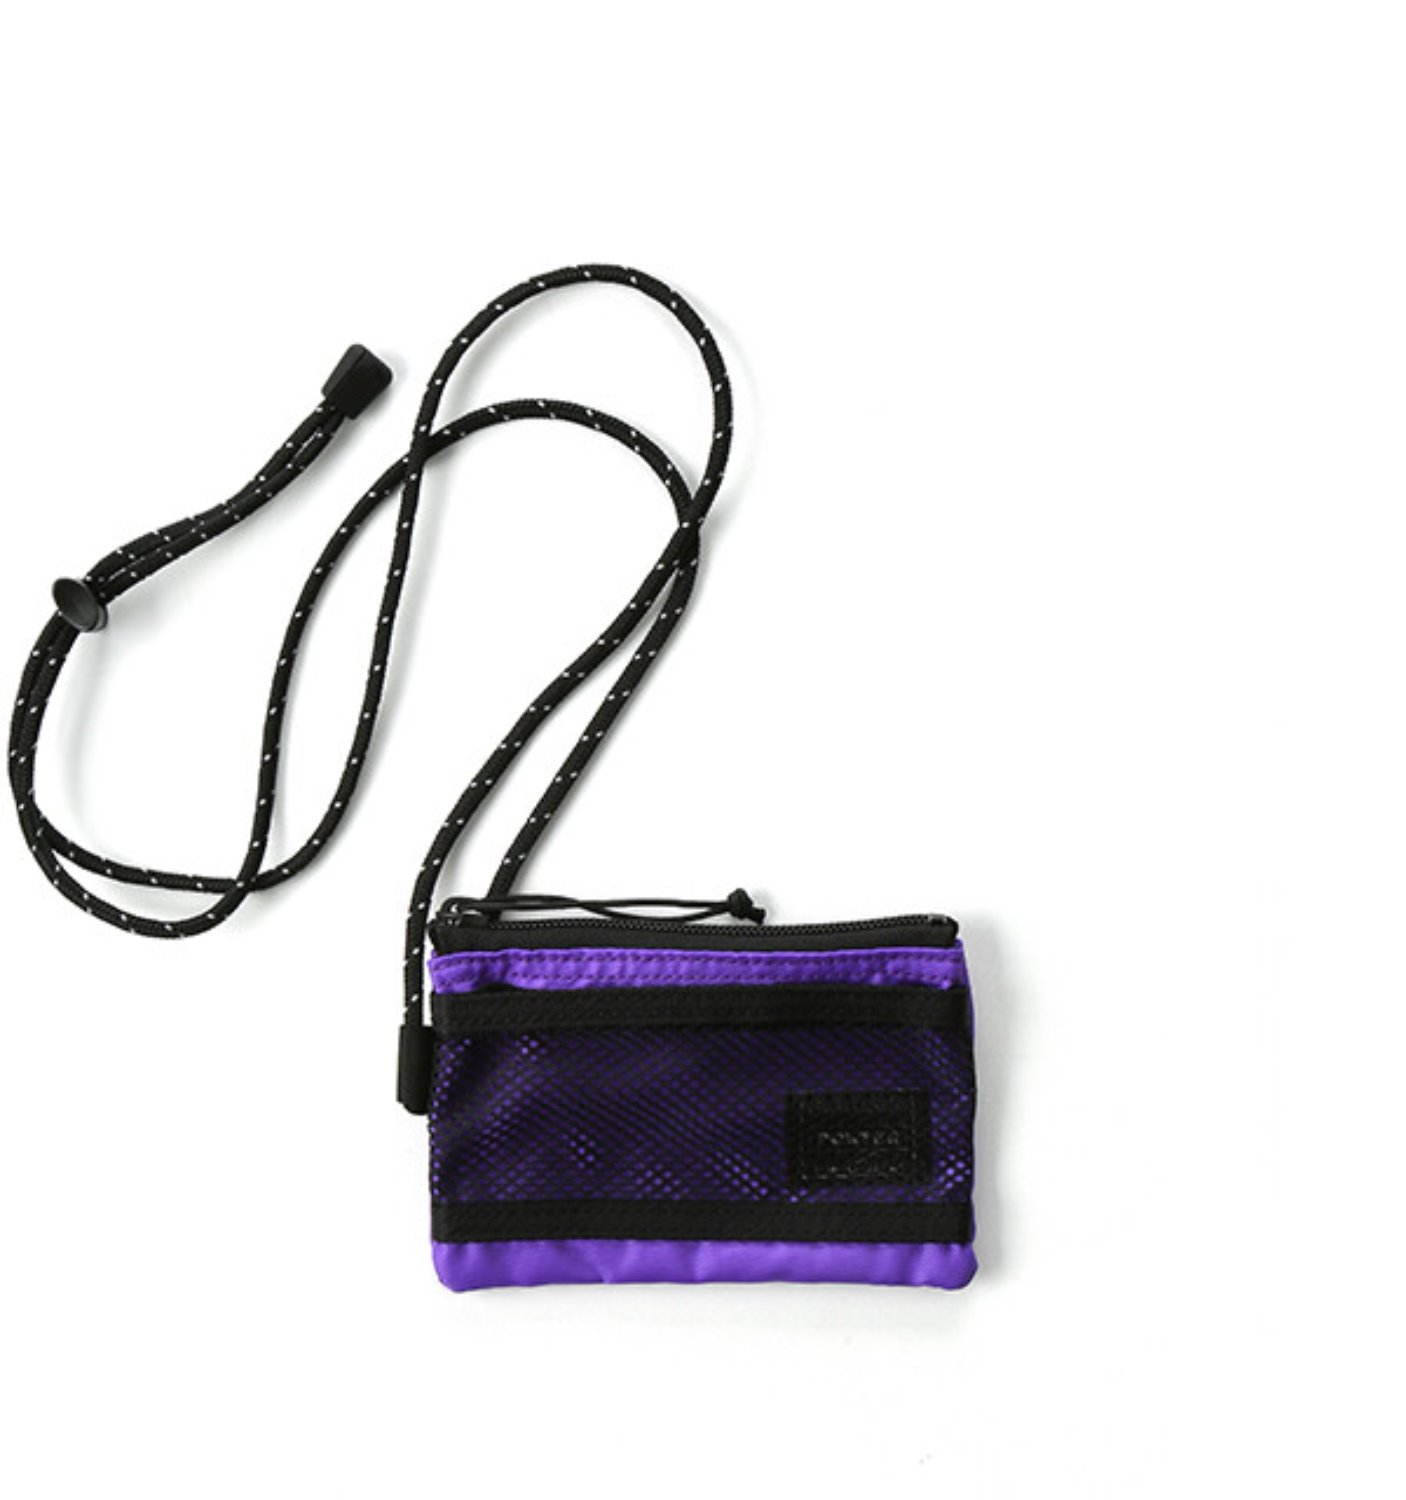 BAL x PORTER® MINI POUCH PURPLE